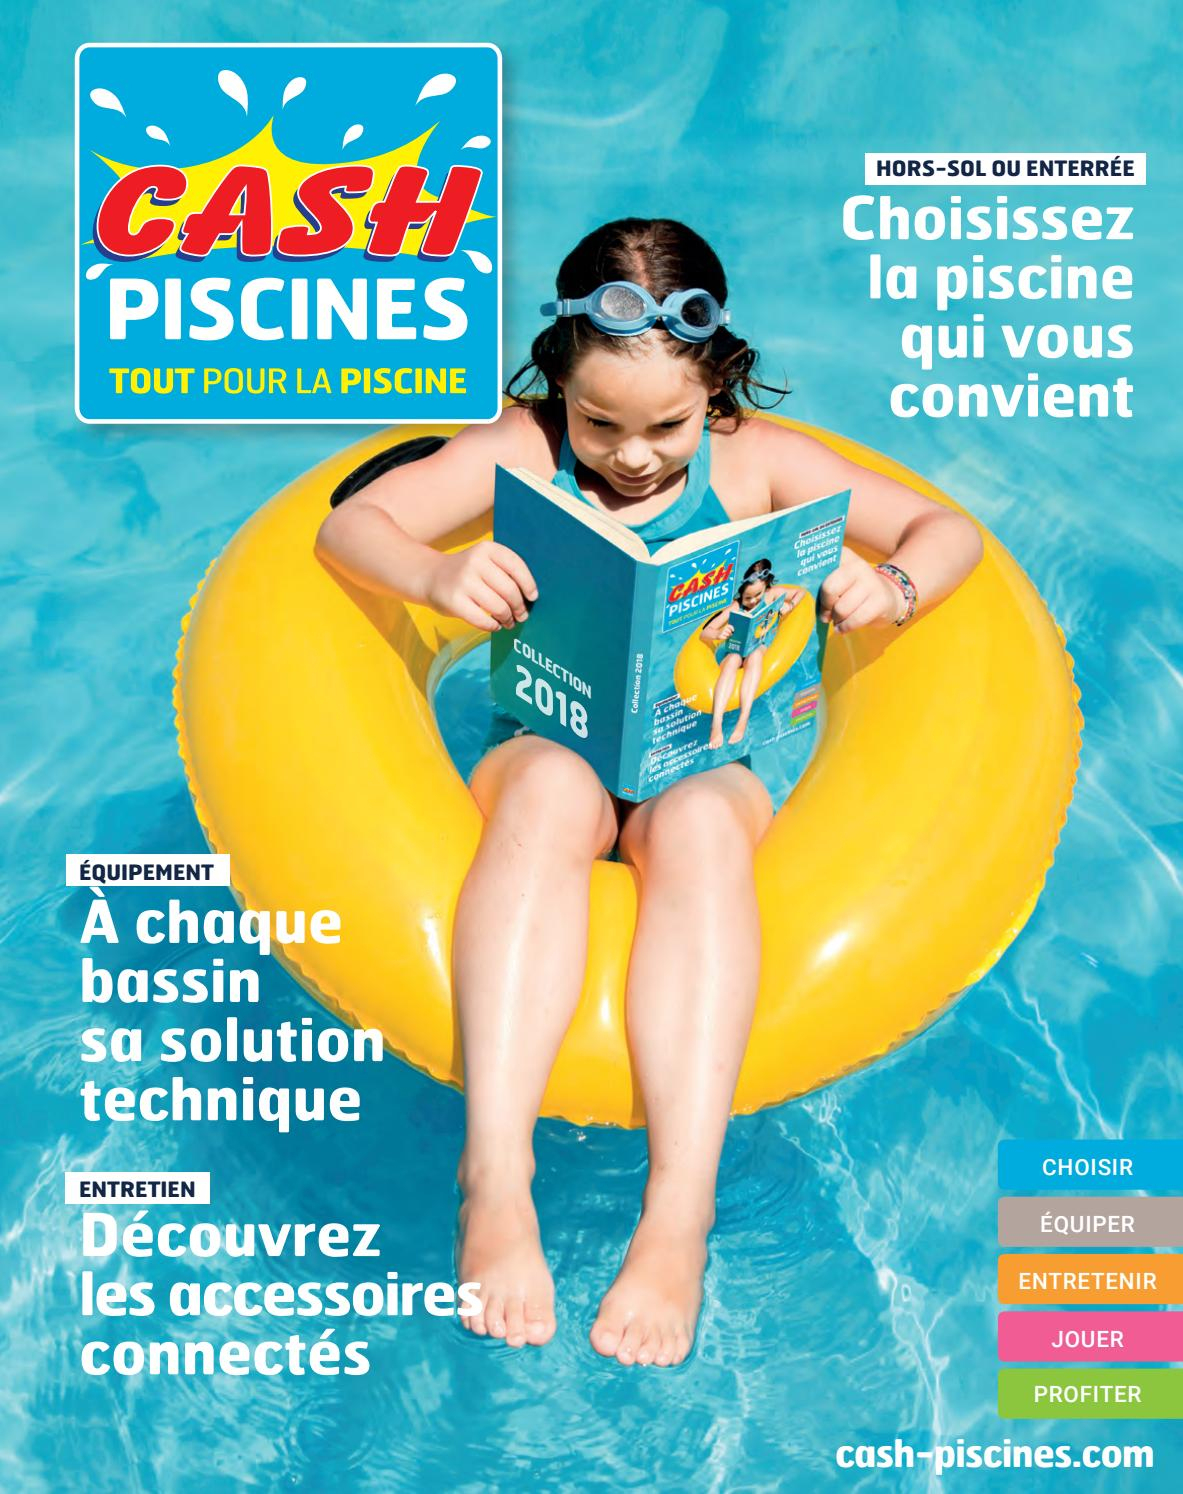 Catalogue Cash Piscine 2018 By Octave Octave - Issuu tout Cash Piscine Blois